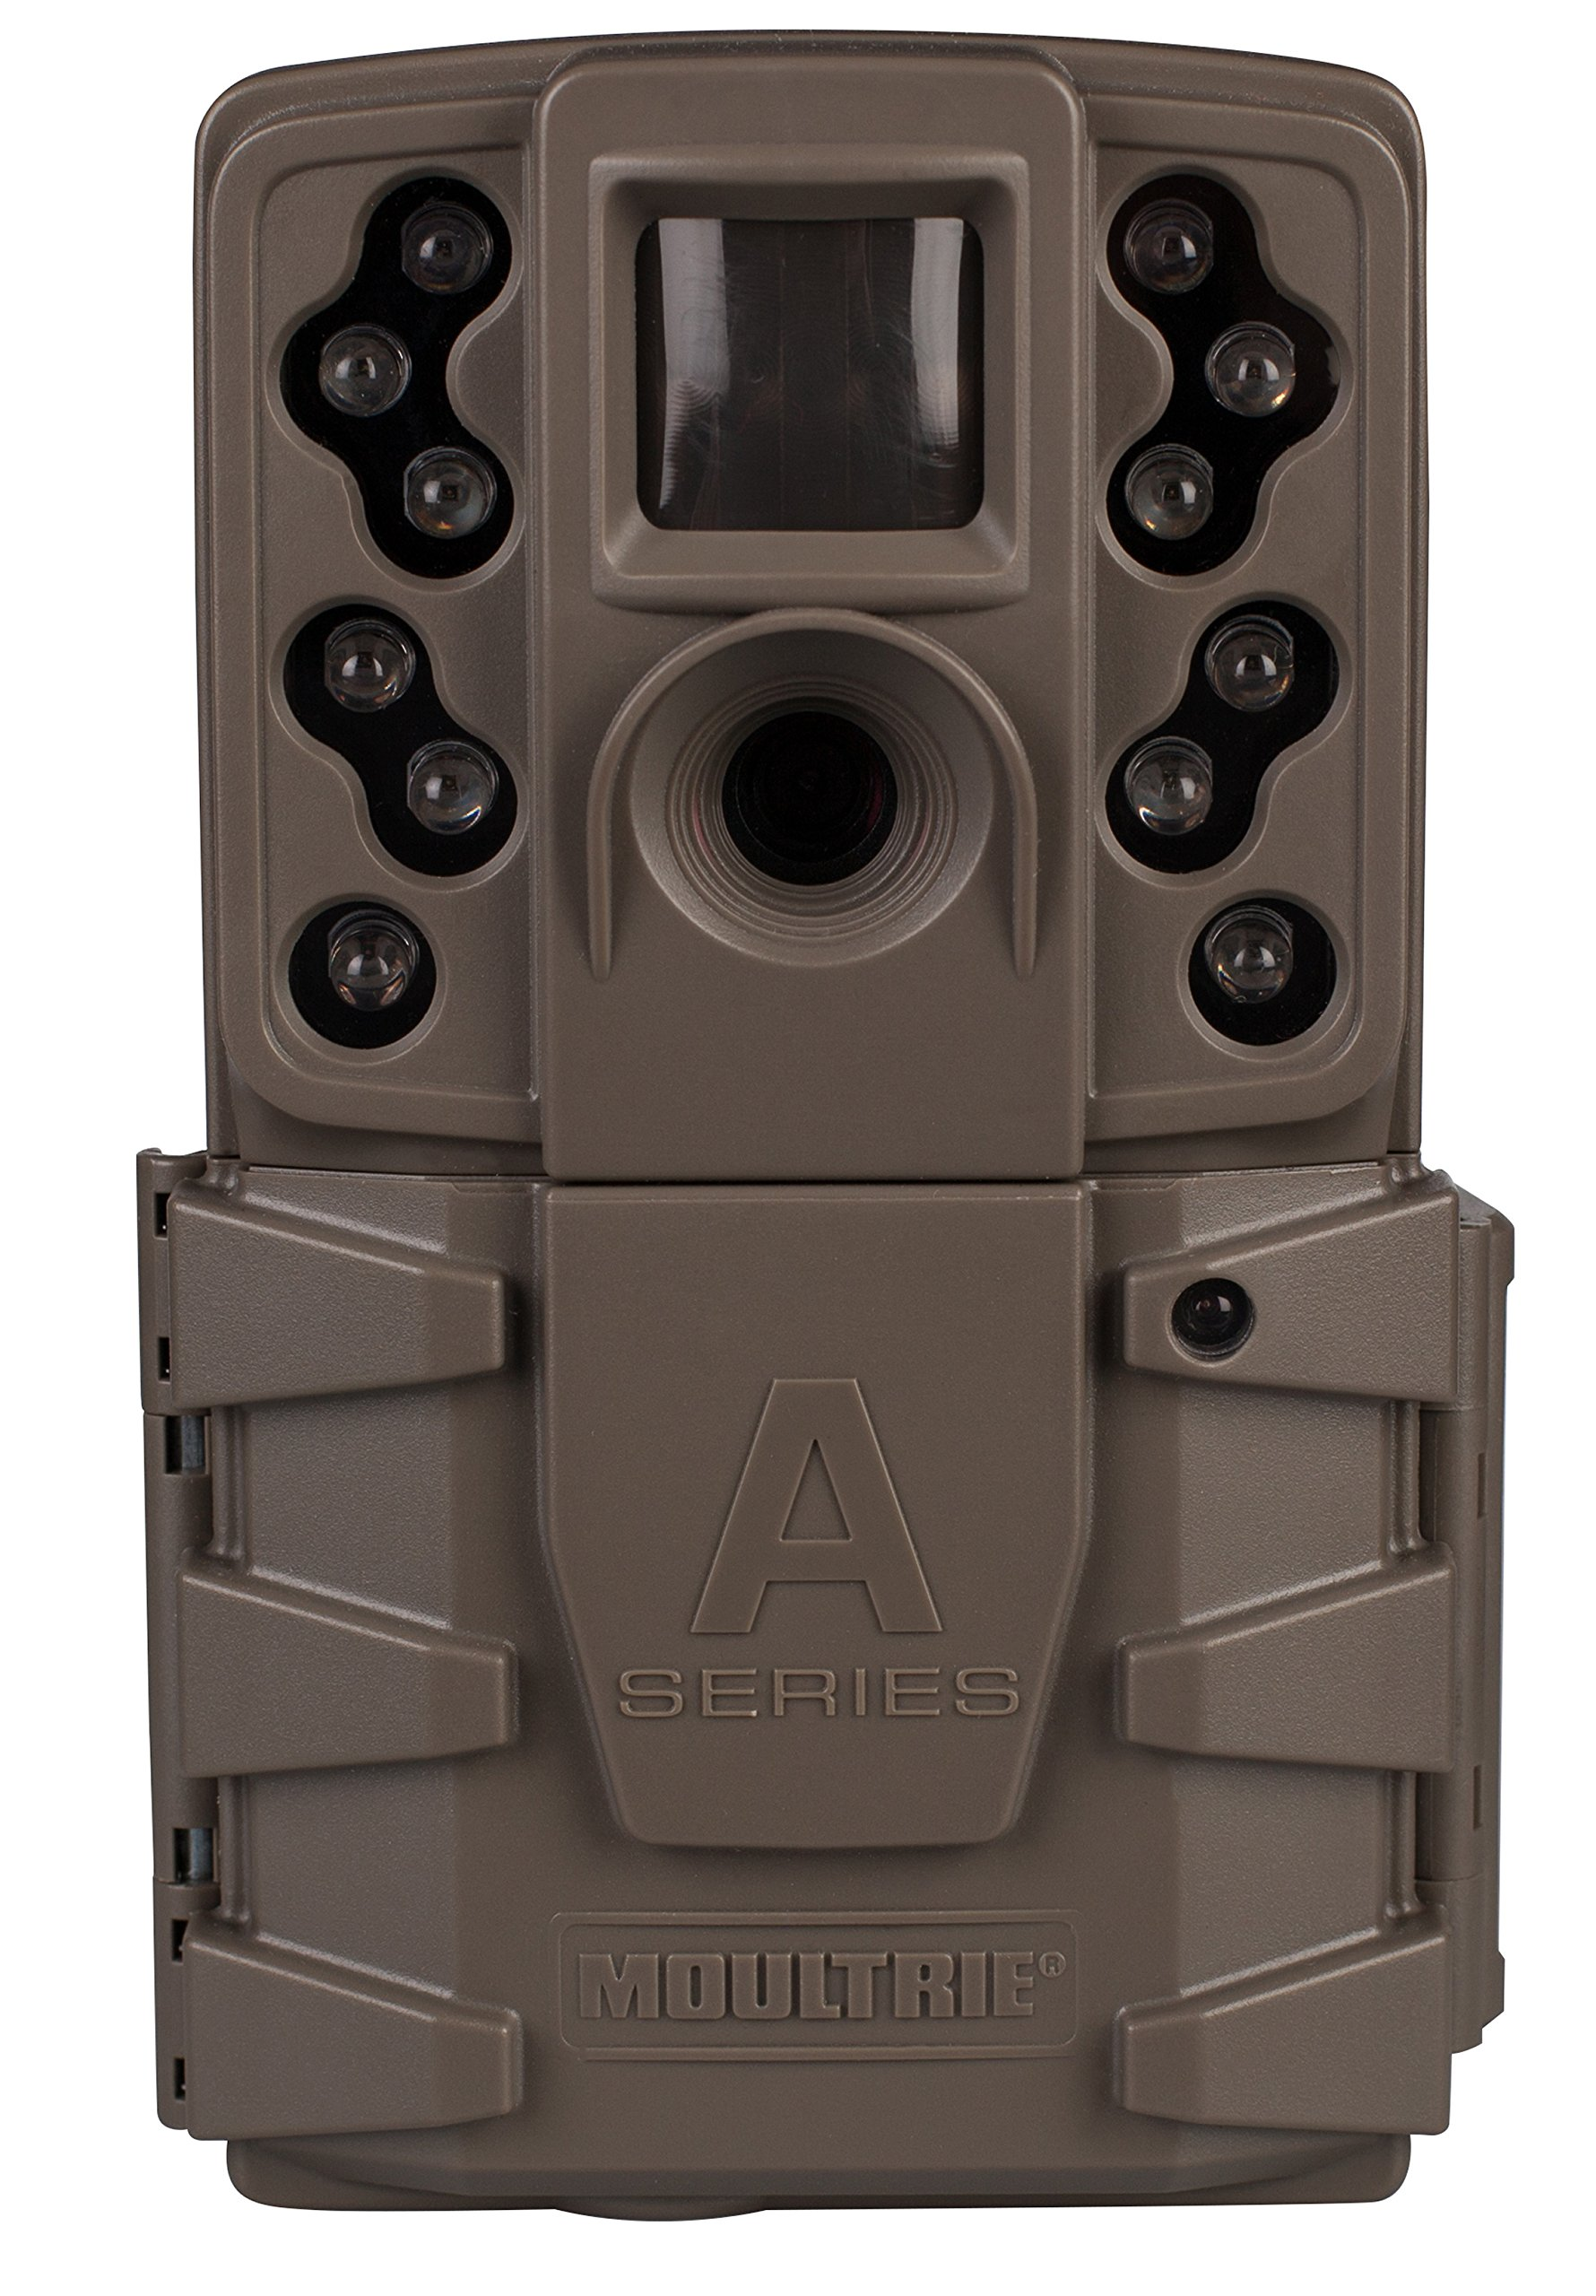 Moultrie A-25 Game Camera (2018) | A-Series| 12 MP | 0.9 S Trigger Speed | 720p Video | Compatible with Moultrie Mobile (sold separately) by Moultrie